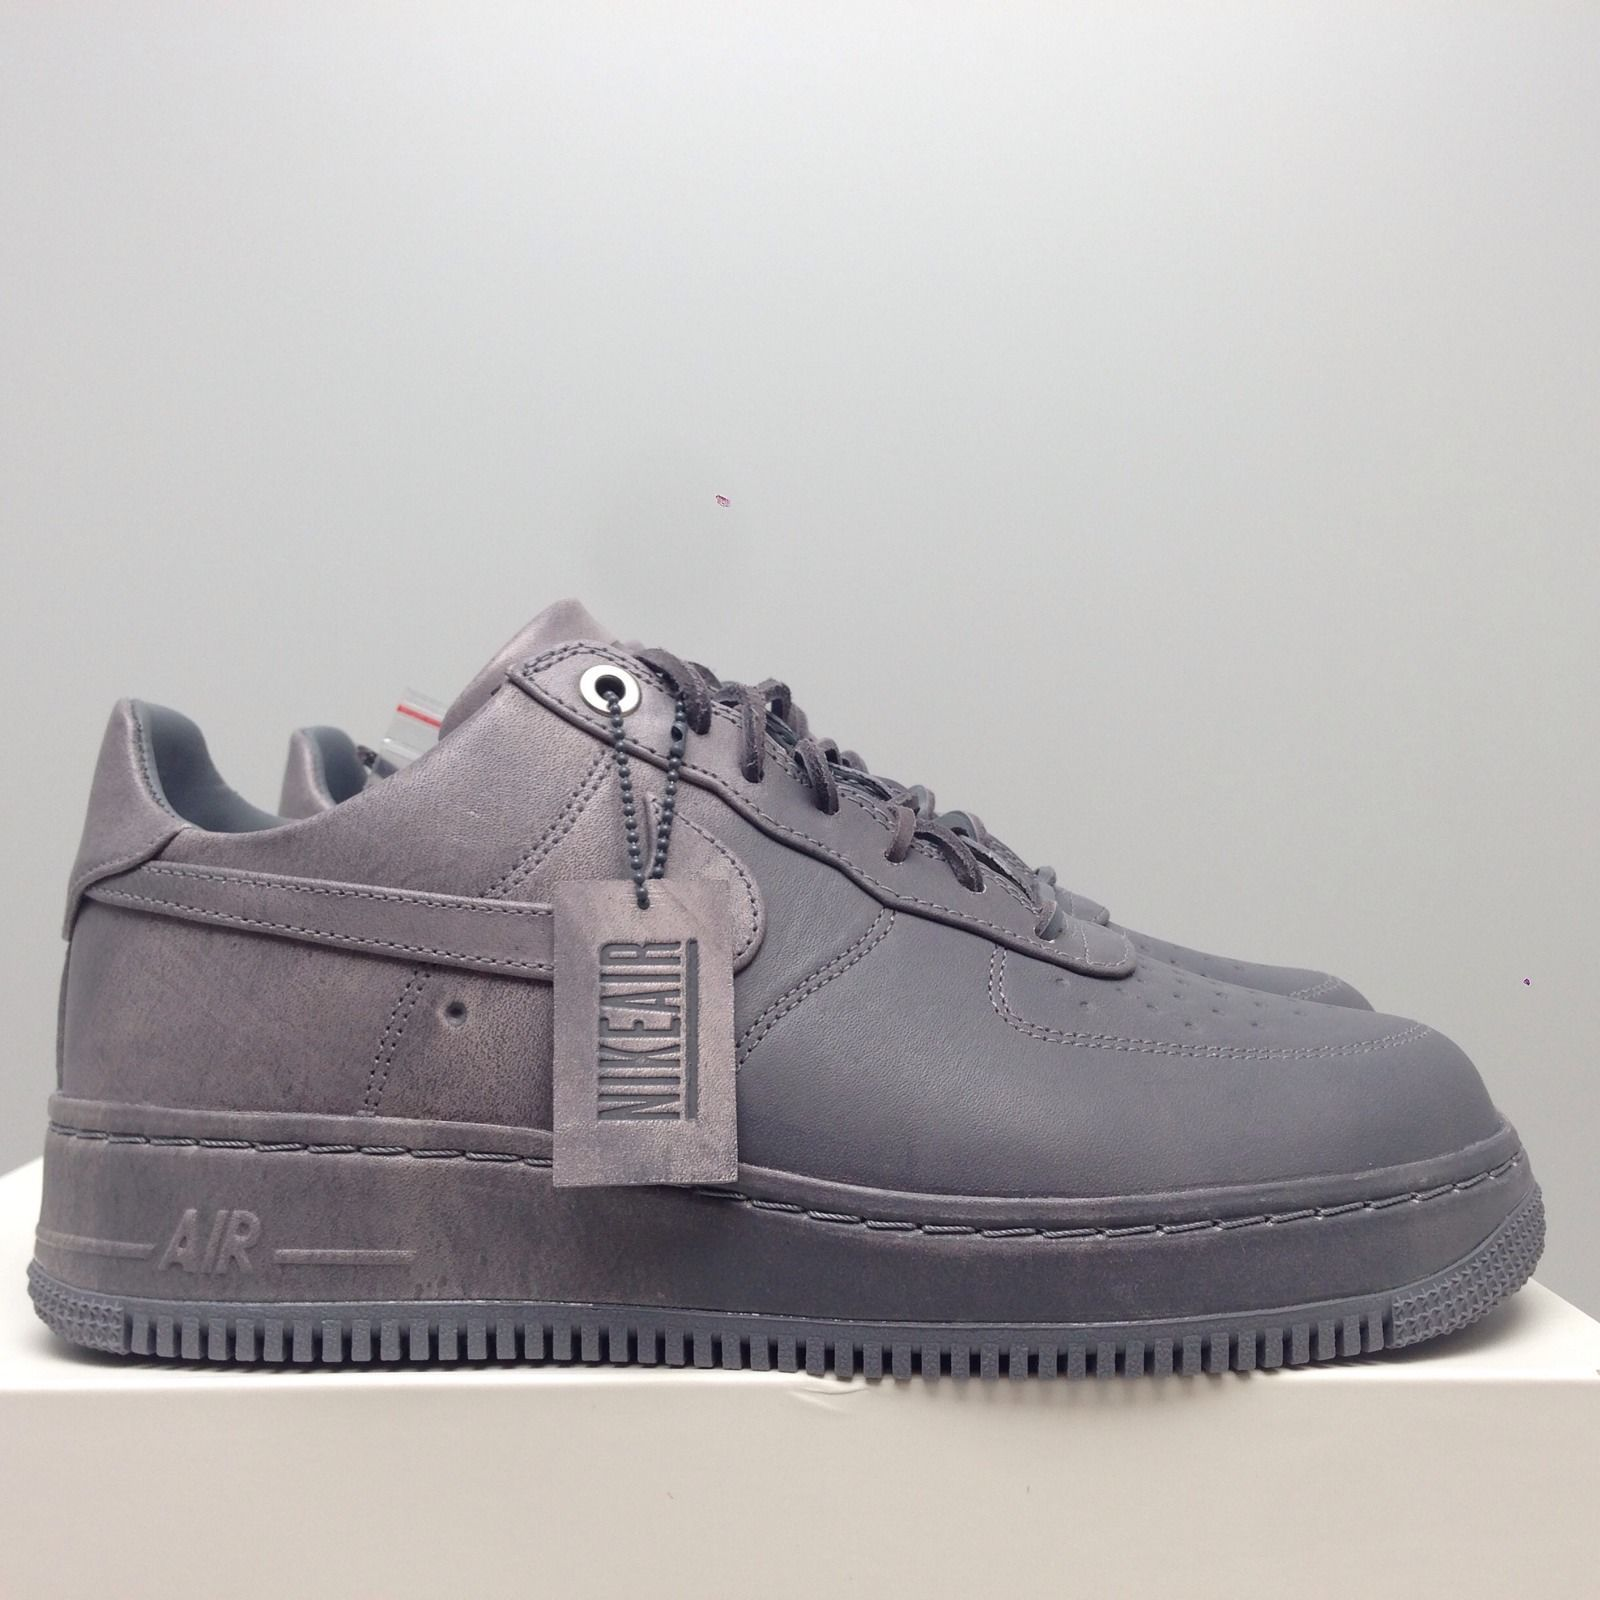 Men's Nike Air Force 1 Low Denim Obsidian Blue Legend Sneakers : M25r3392